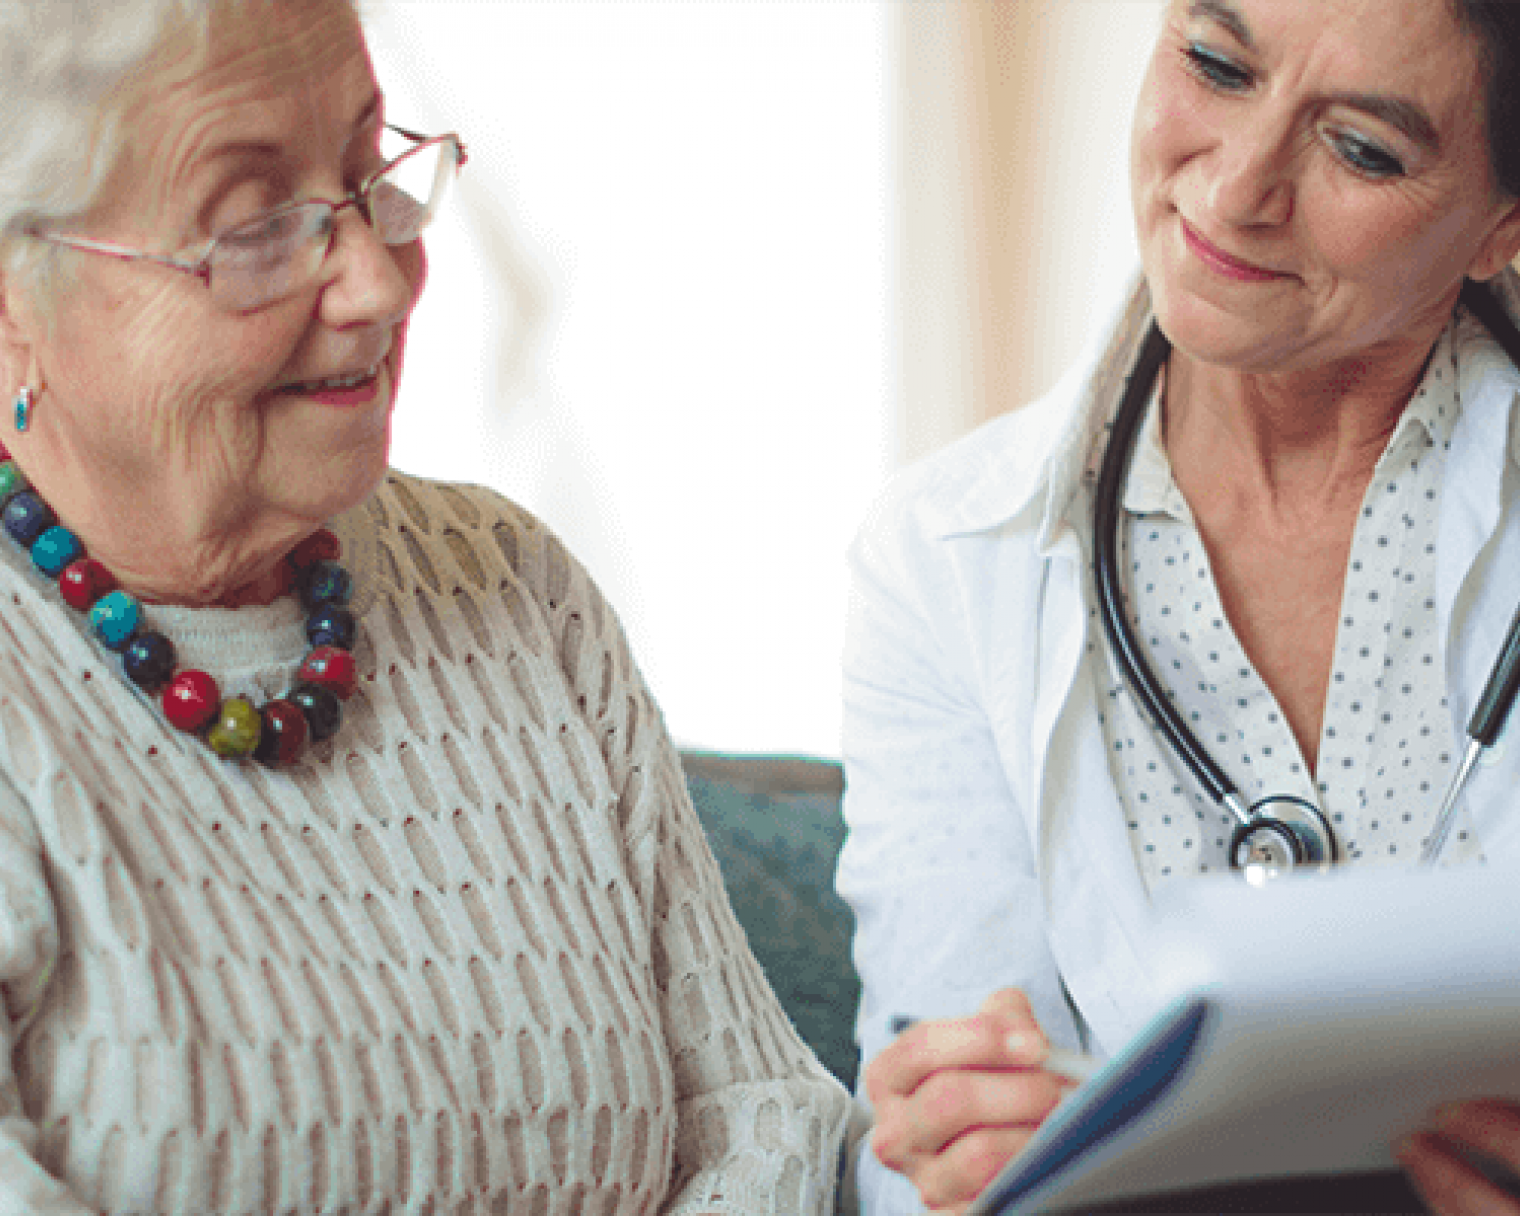 Doctor and elderly female patient reviewing results